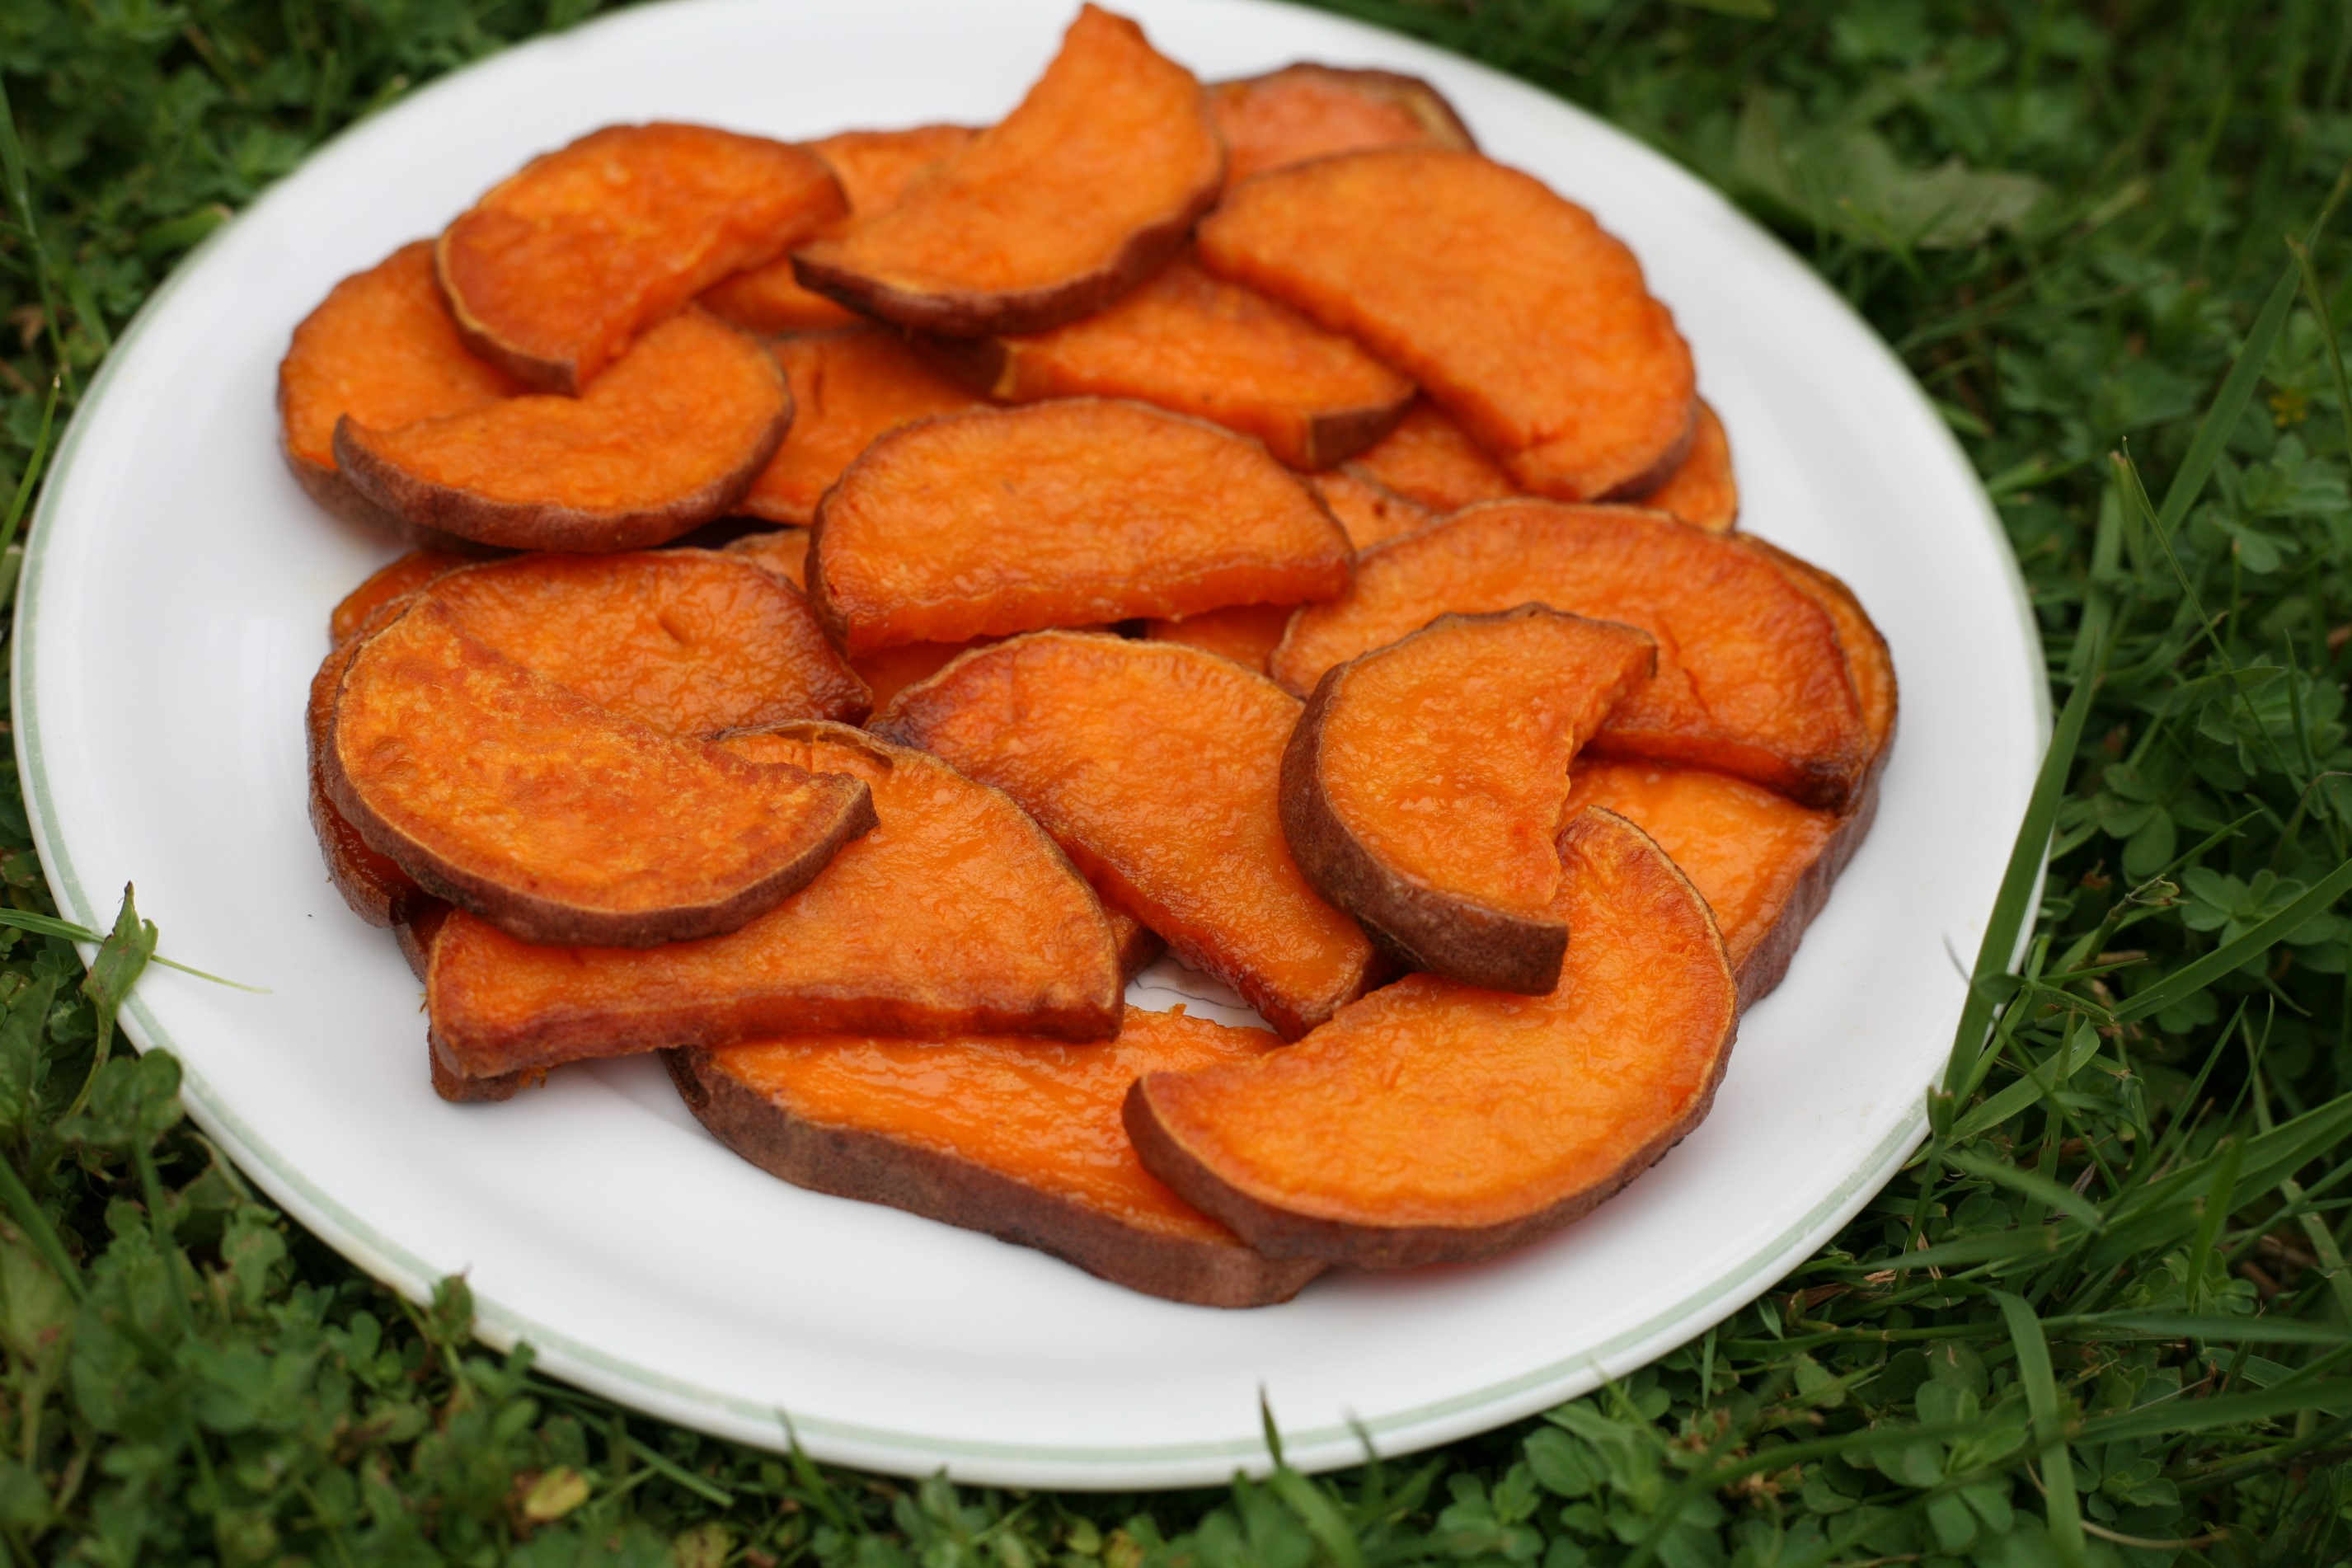 baked sweet potato slices - WoolyMossRoots